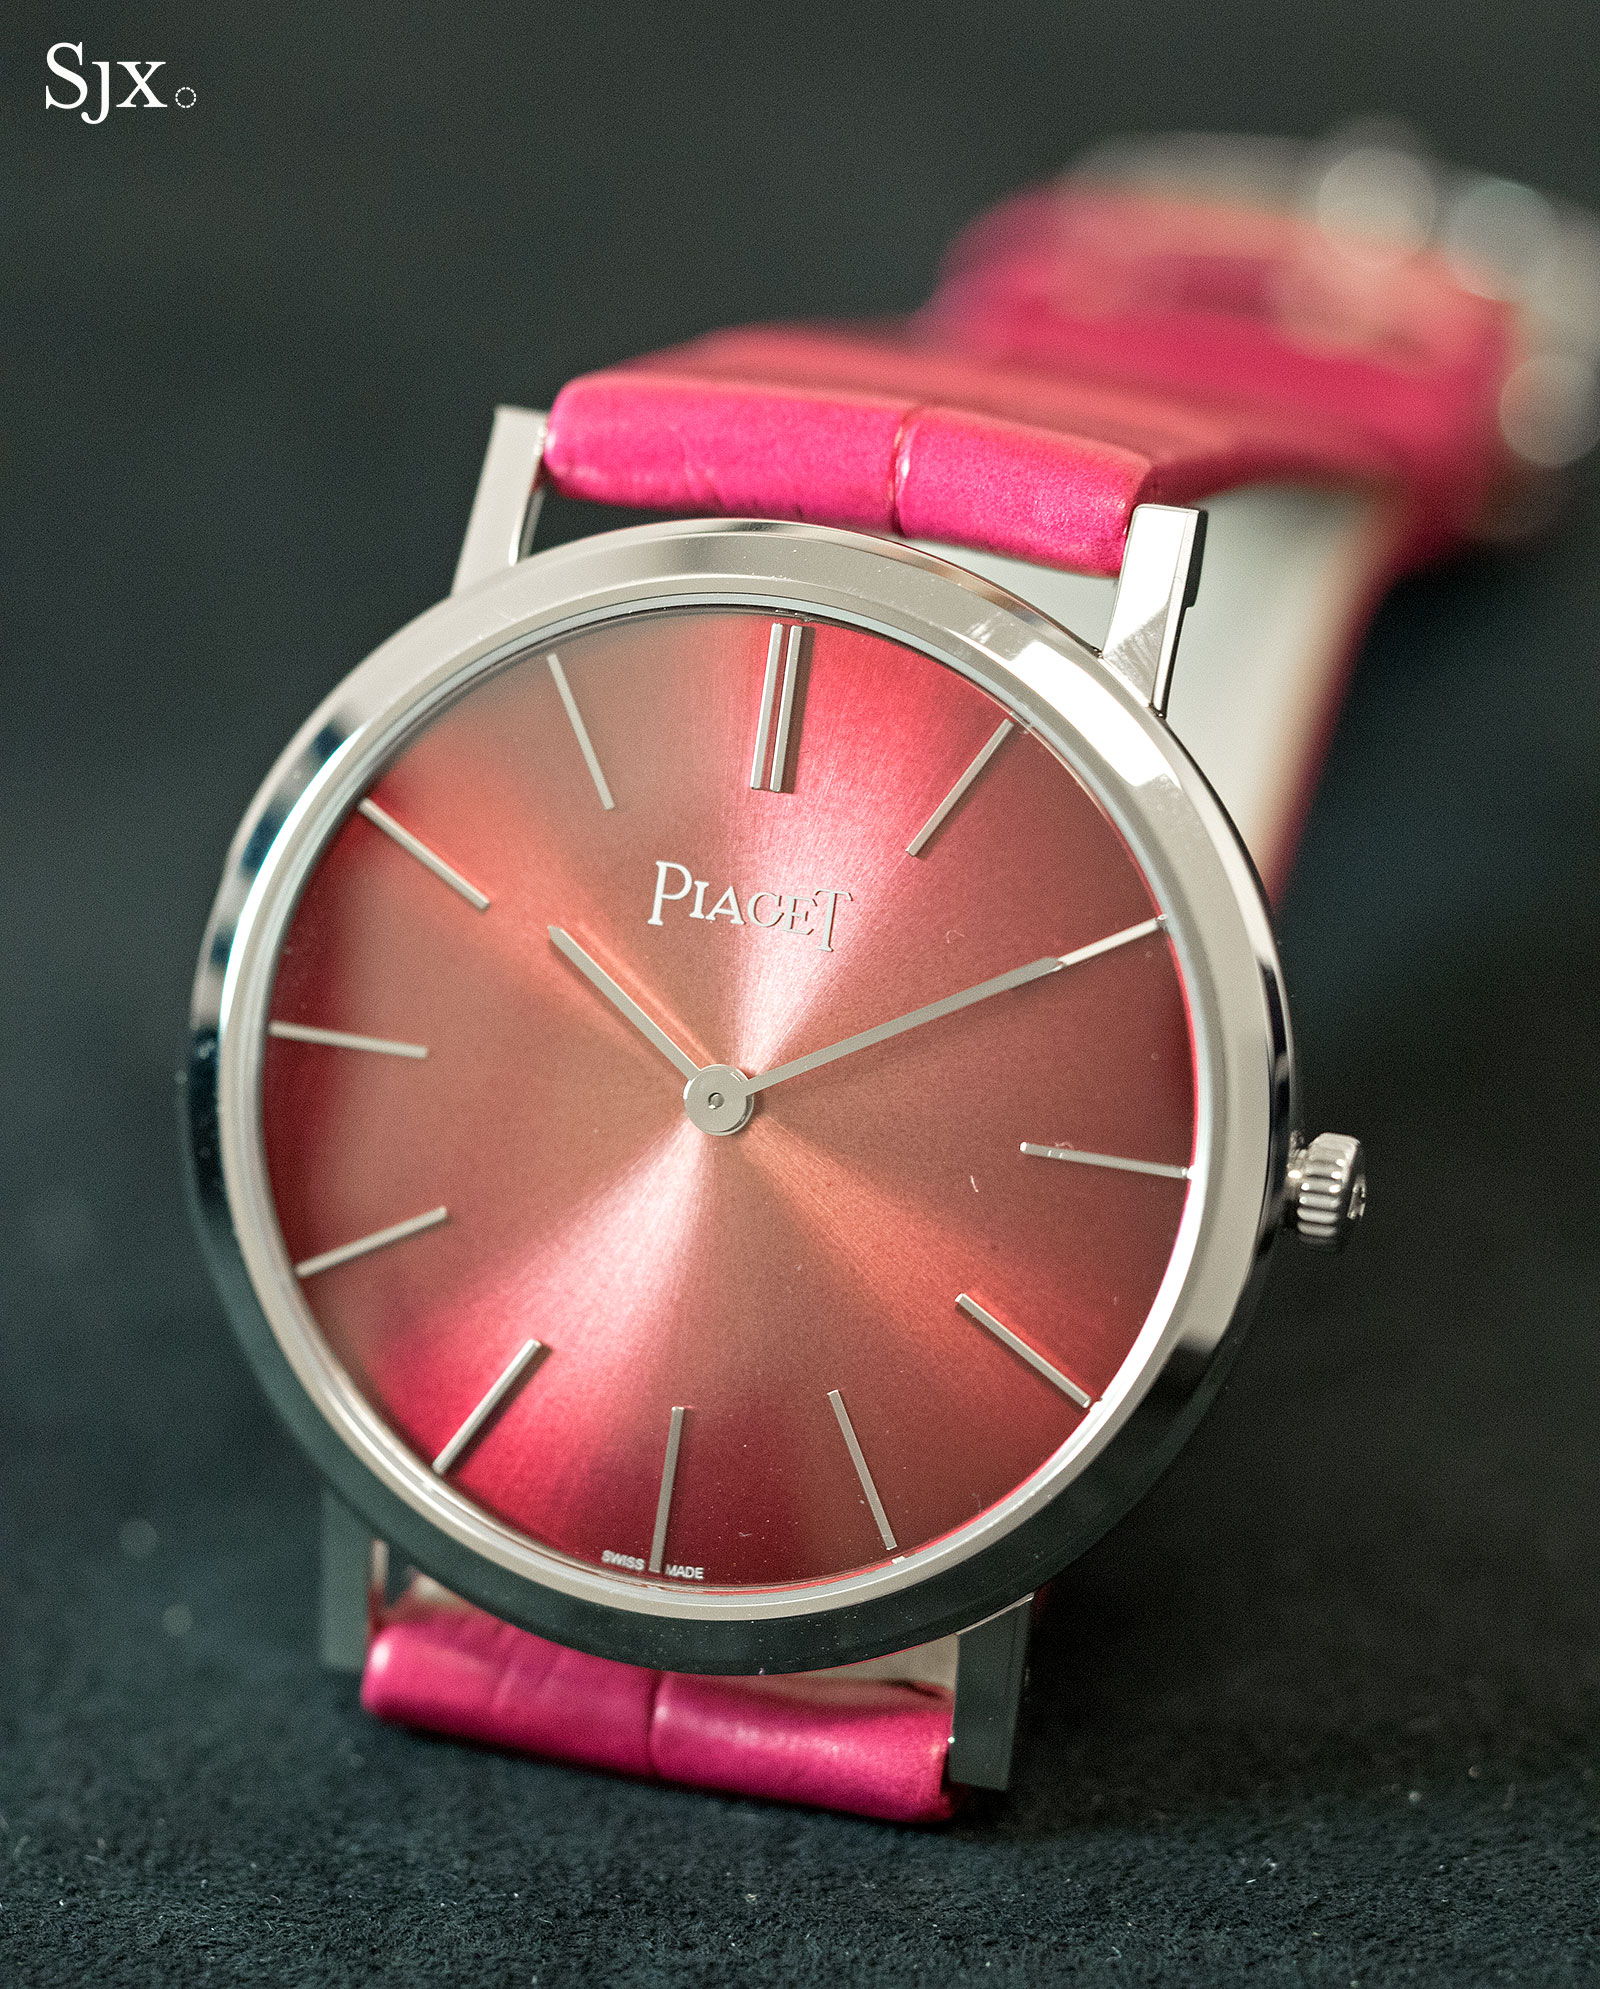 Piaget Altiplano 60th Anniversary 34mm pink 1